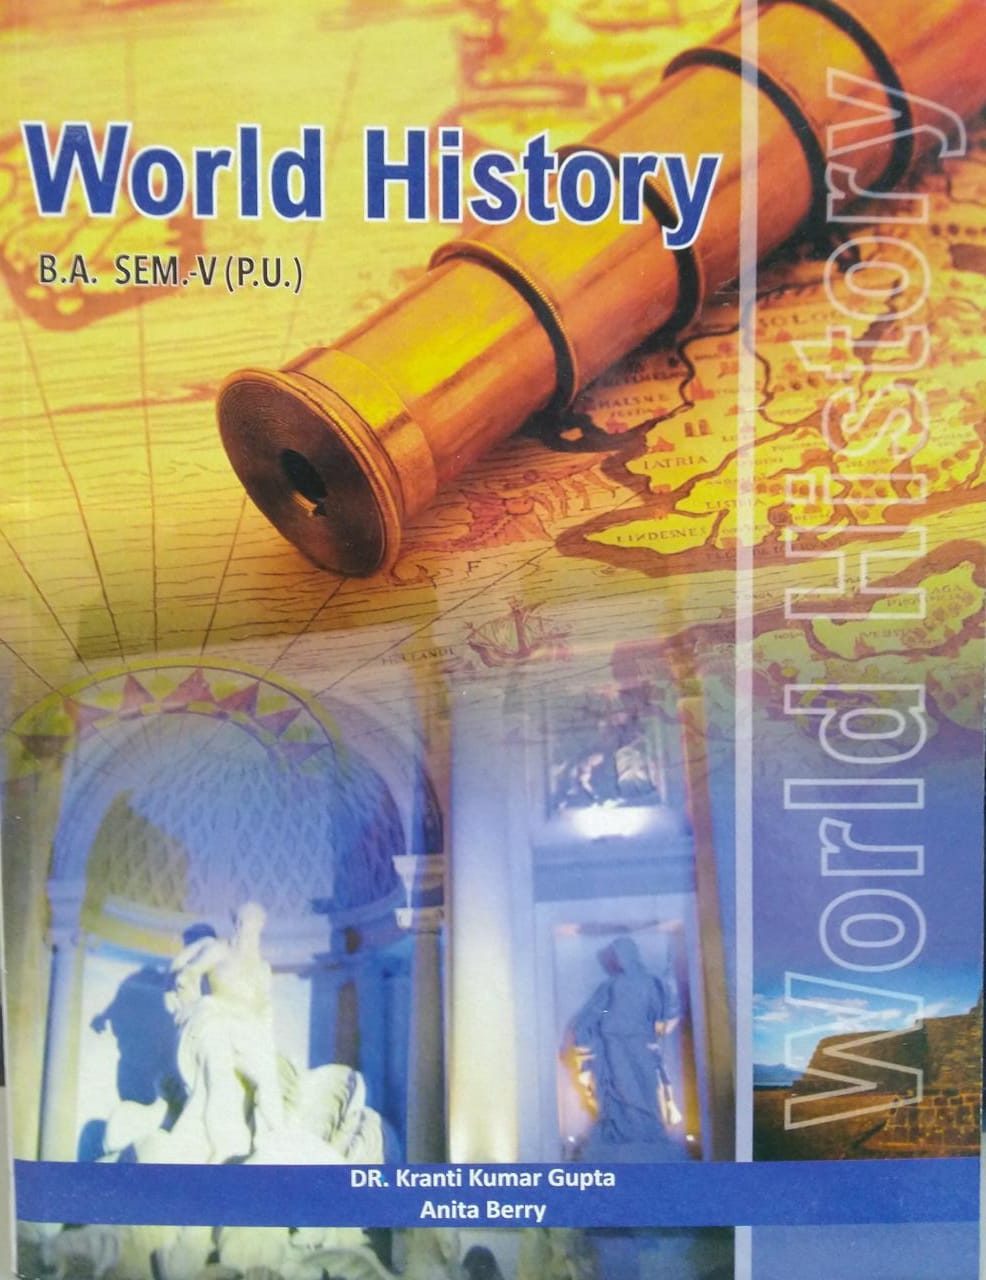 World history for Semester-V B.A. (P.U.) by Dr. K.K. Gupta and Anita Berry (Mohindra Publishng house) for Panjab University